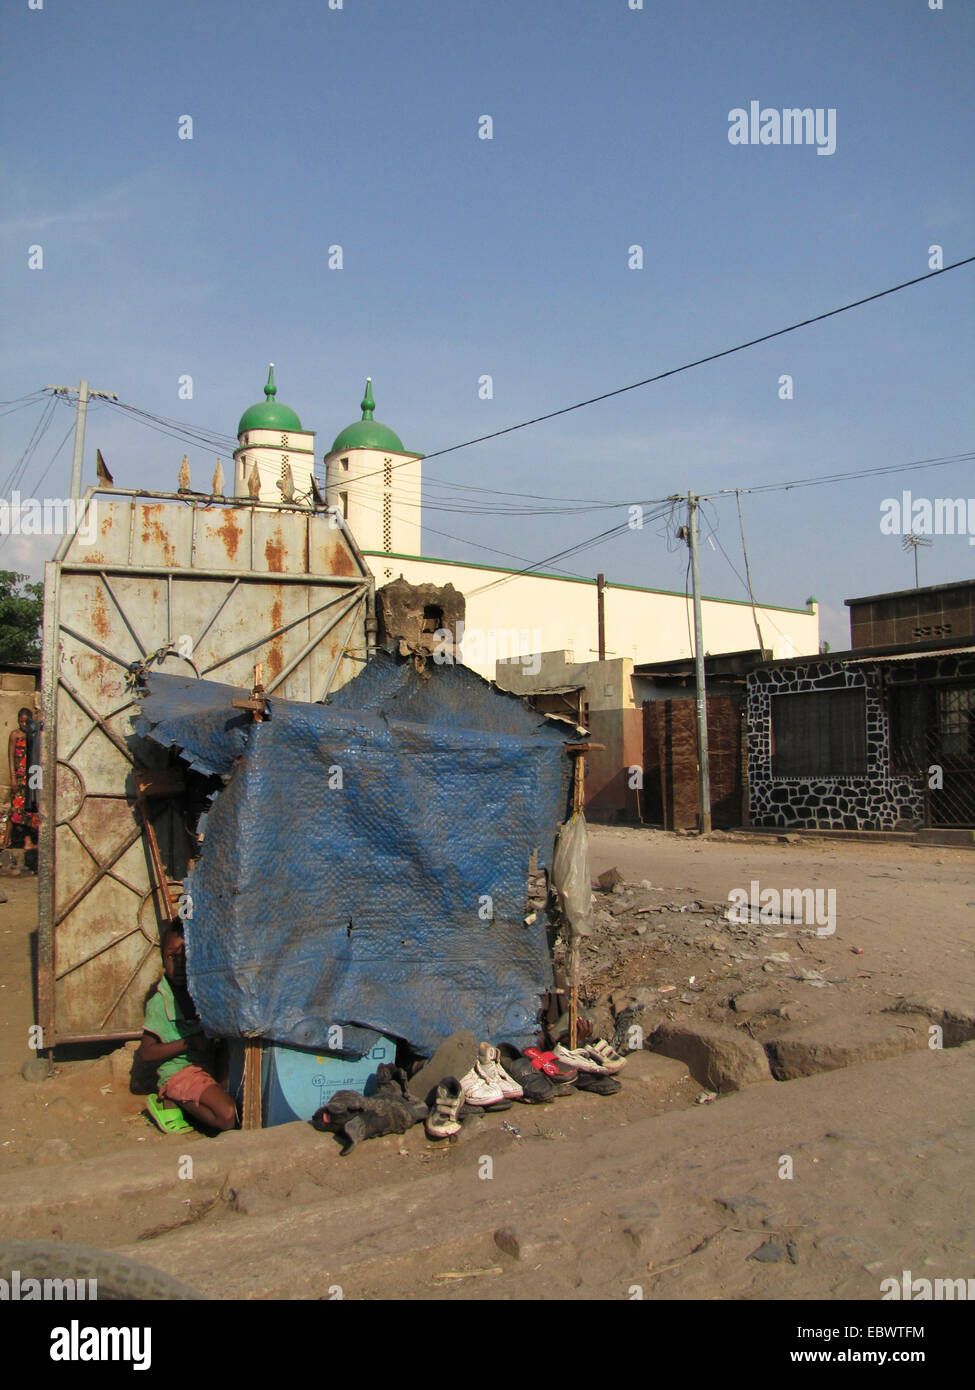 primitive little shop in which shoes are repaired with a mosque in the background, Burundi, Bujumbura mairie, Bwiza, Stock Photo